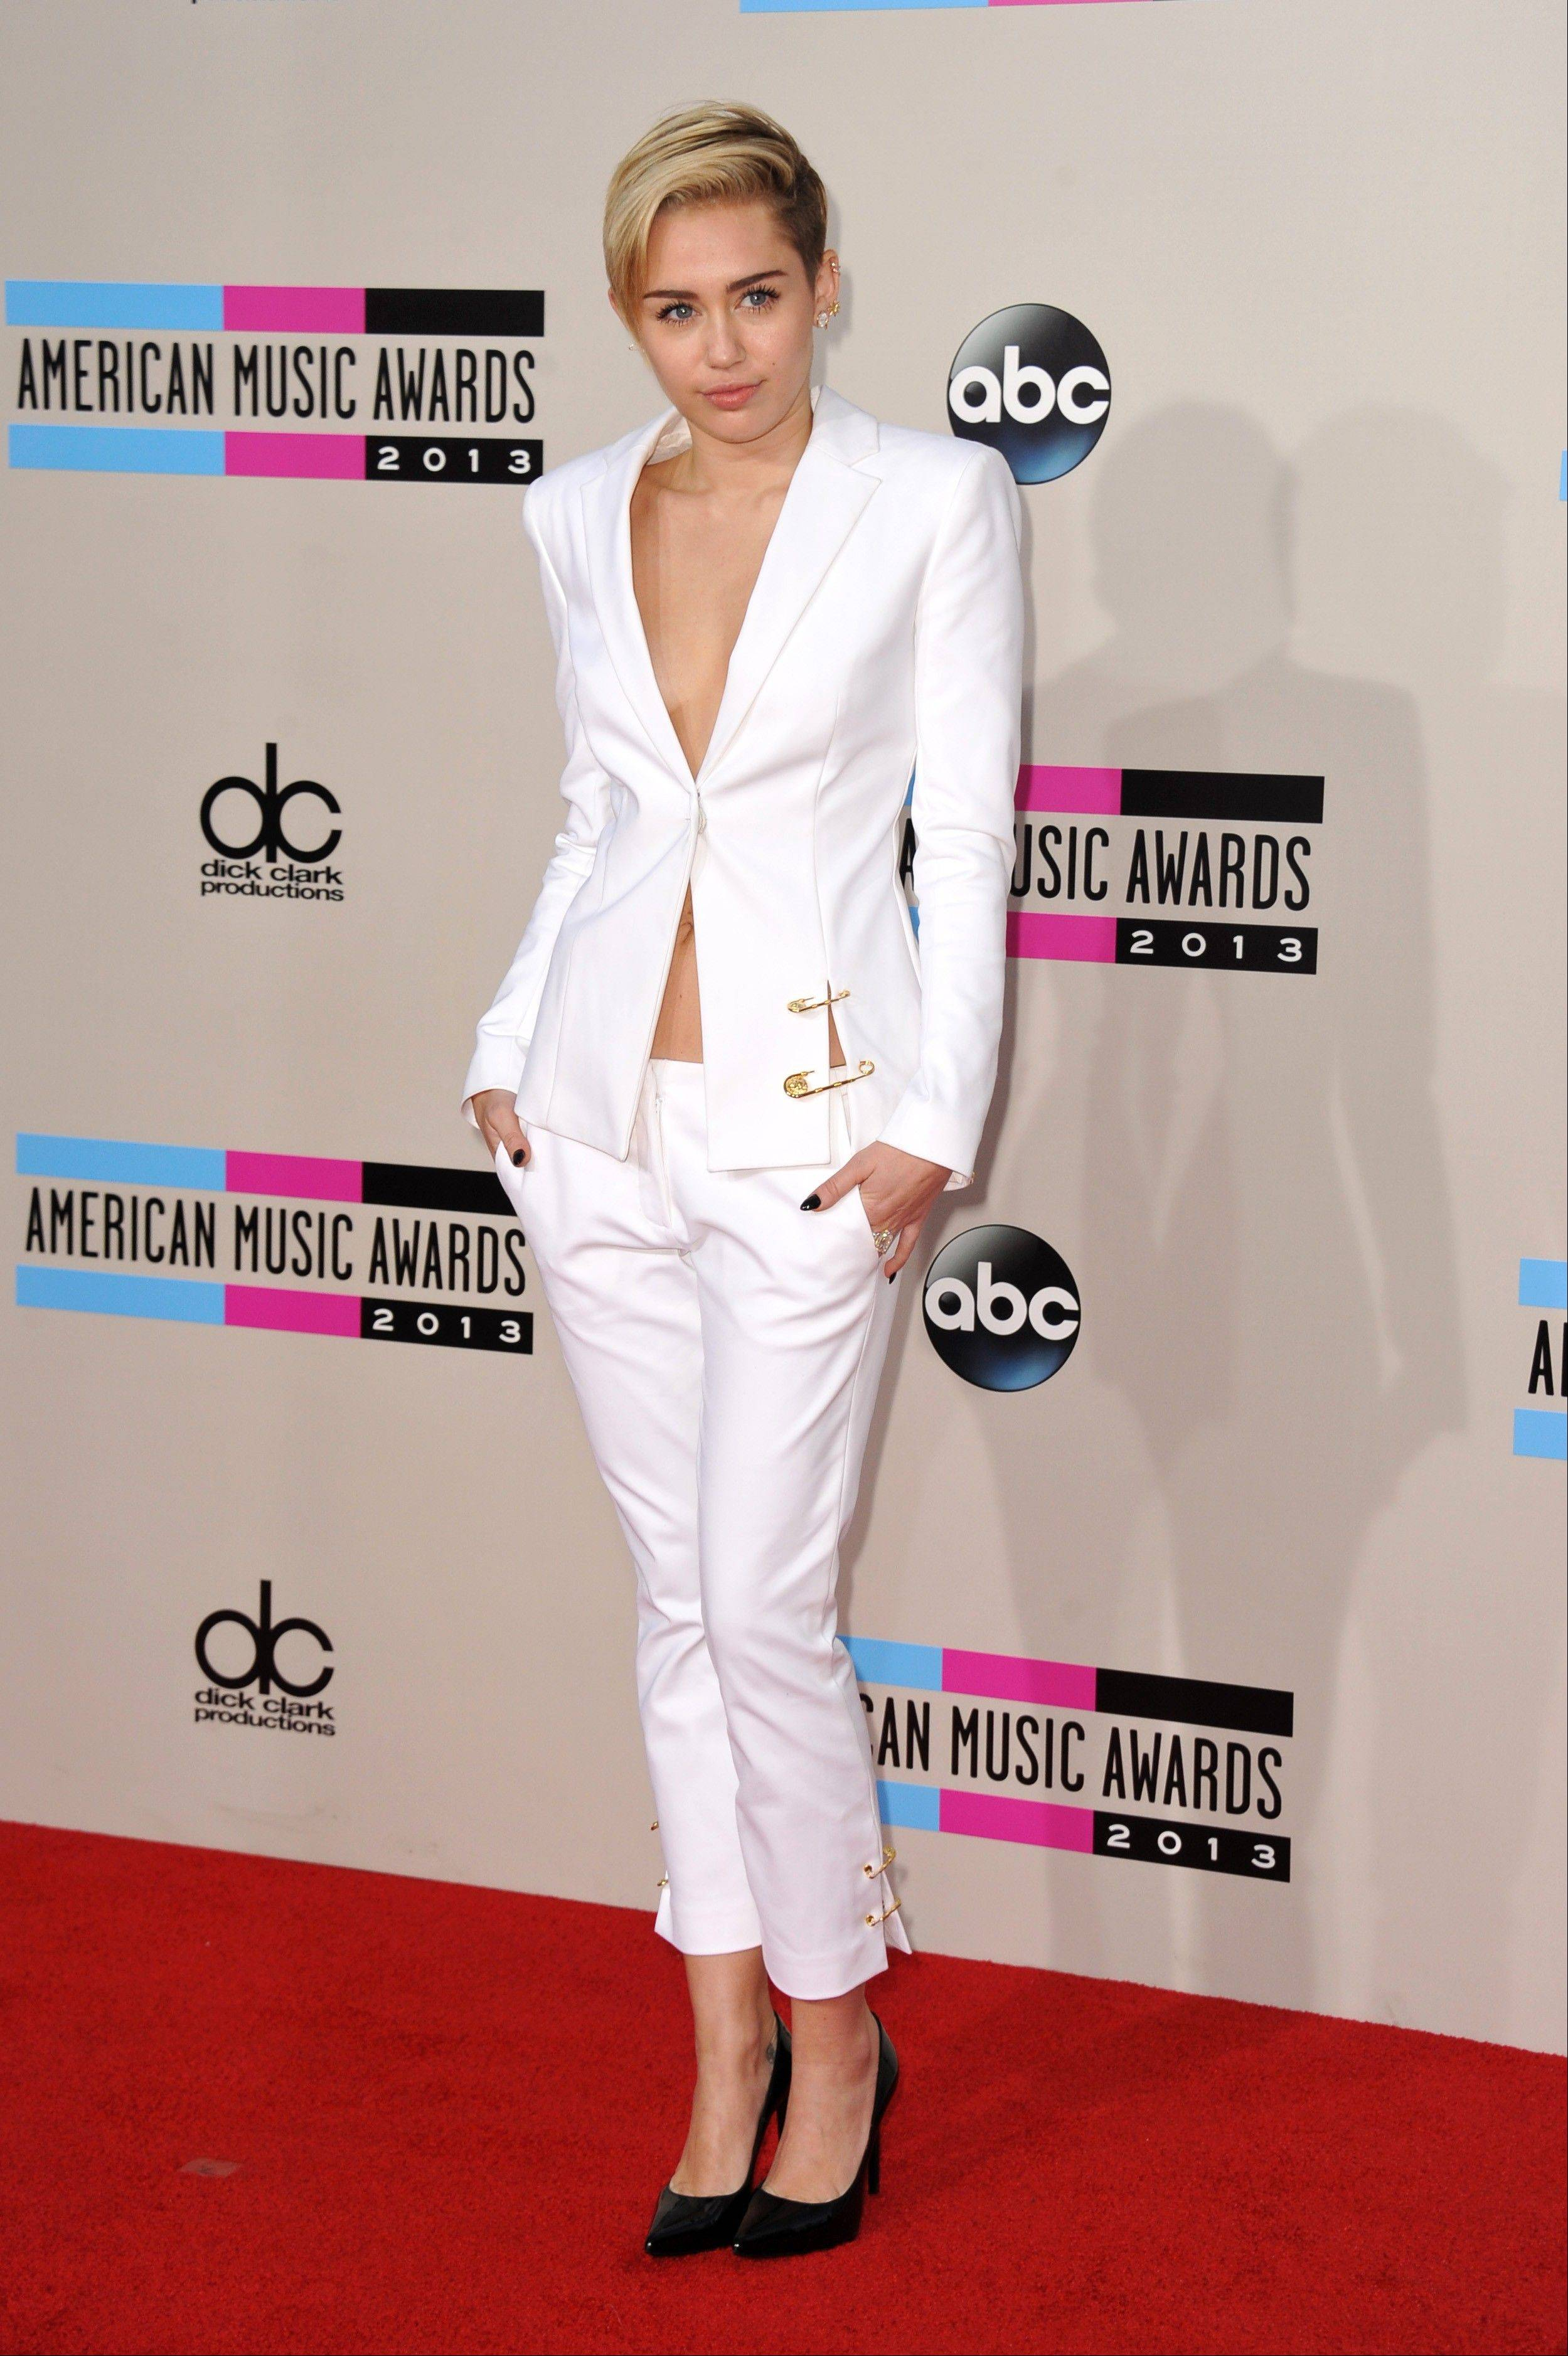 This Nov. 24, 2013 file photo shows Miley Cyrus at the American Music Awards in Los Angeles. It must be mentioned that Miley Cyrus embodied more than one fashion trend this year. Is Cyrus becoming a fashion icon? Not by the standard definition. But heading into 2014 she was one of the most-watched people on the planet